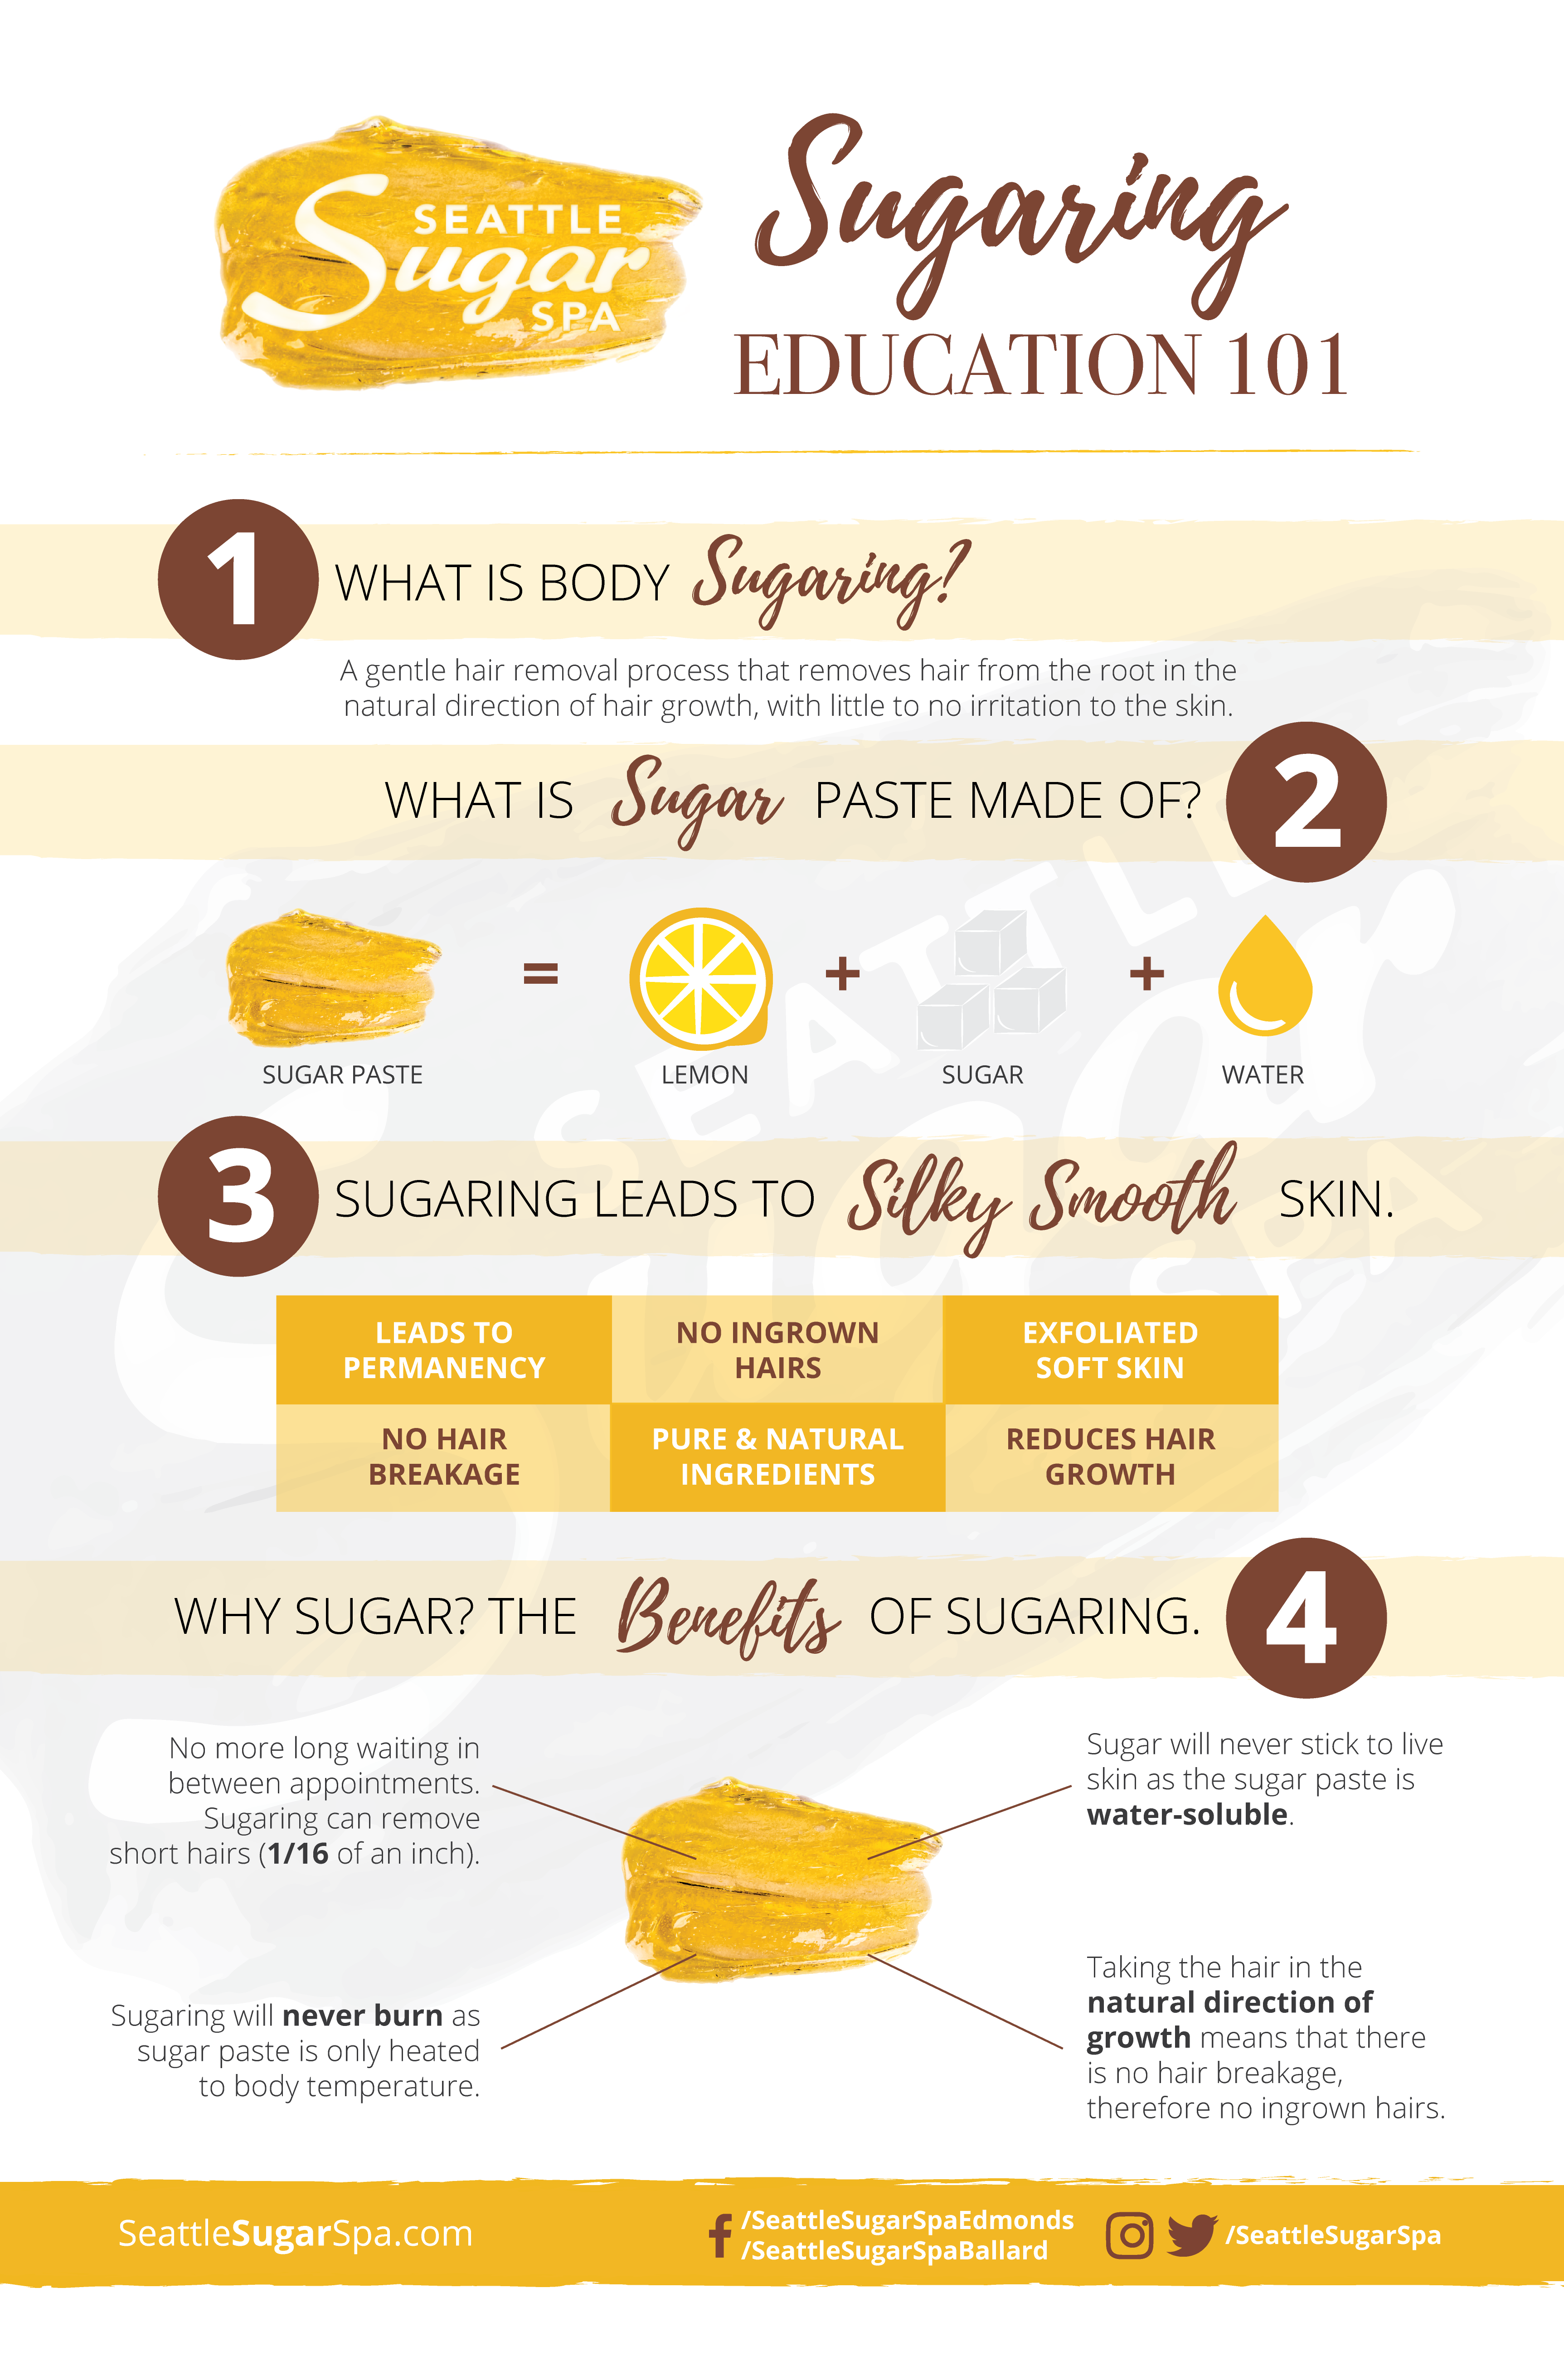 Sugaring 101 Learn All About Sugaring What Sugar Paste Is Made From And The Benefits Of Sugari Diy Wax Hair Removal Sugaring Hair Removal Diy Sugar Wax Diy